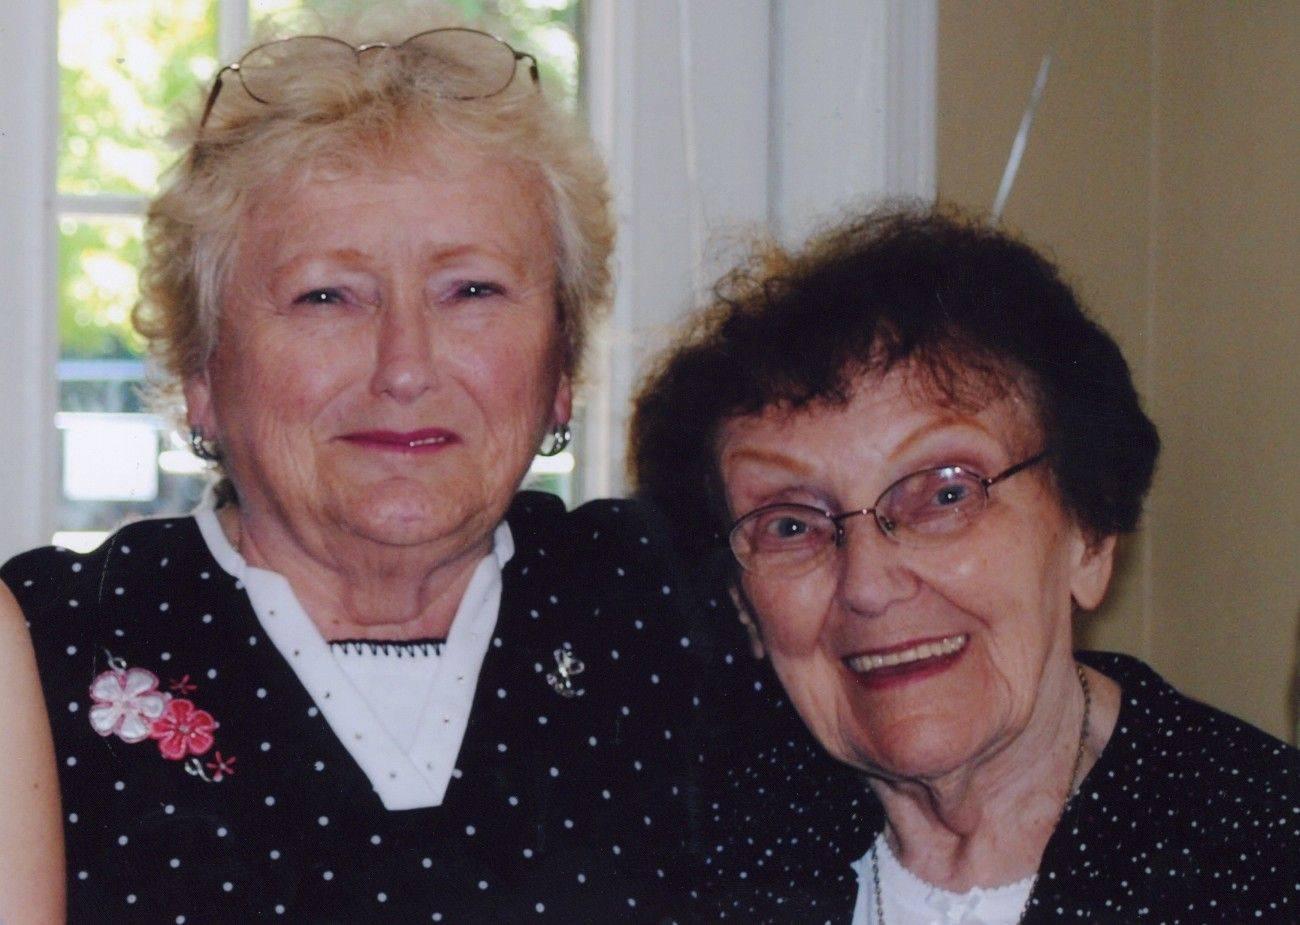 Margaret Simons, 72, and her mother Suzanne Thompson, 92, were killed by a suspected drunken driver hours after this photo was taken Sunday at a bridal shower they attended.